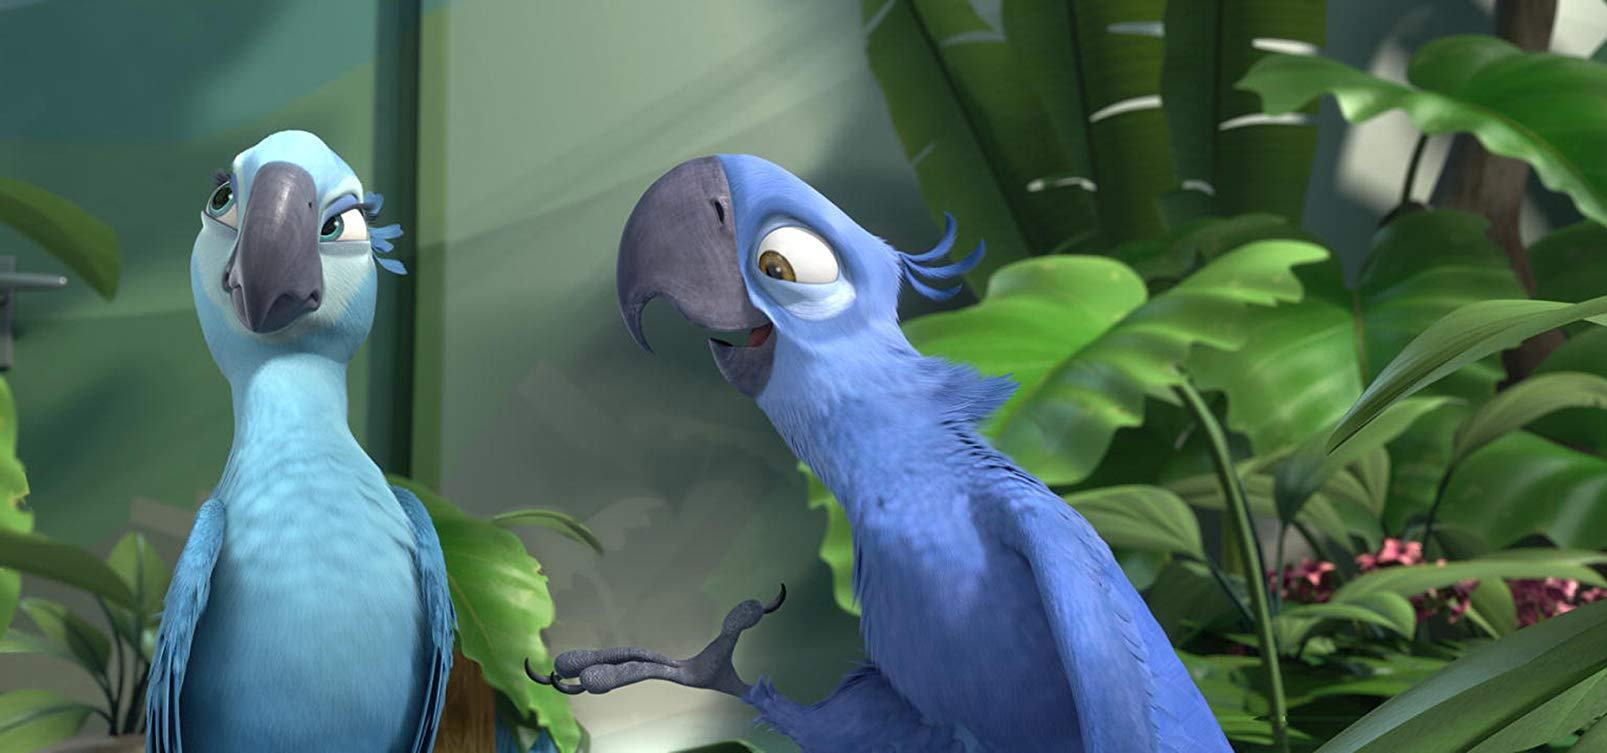 Love among he macaws - (l to r) Jewel (voiced by Anne Hathaway) and Blu (voiced by Jesse Eisenberg) in Rio (2011)